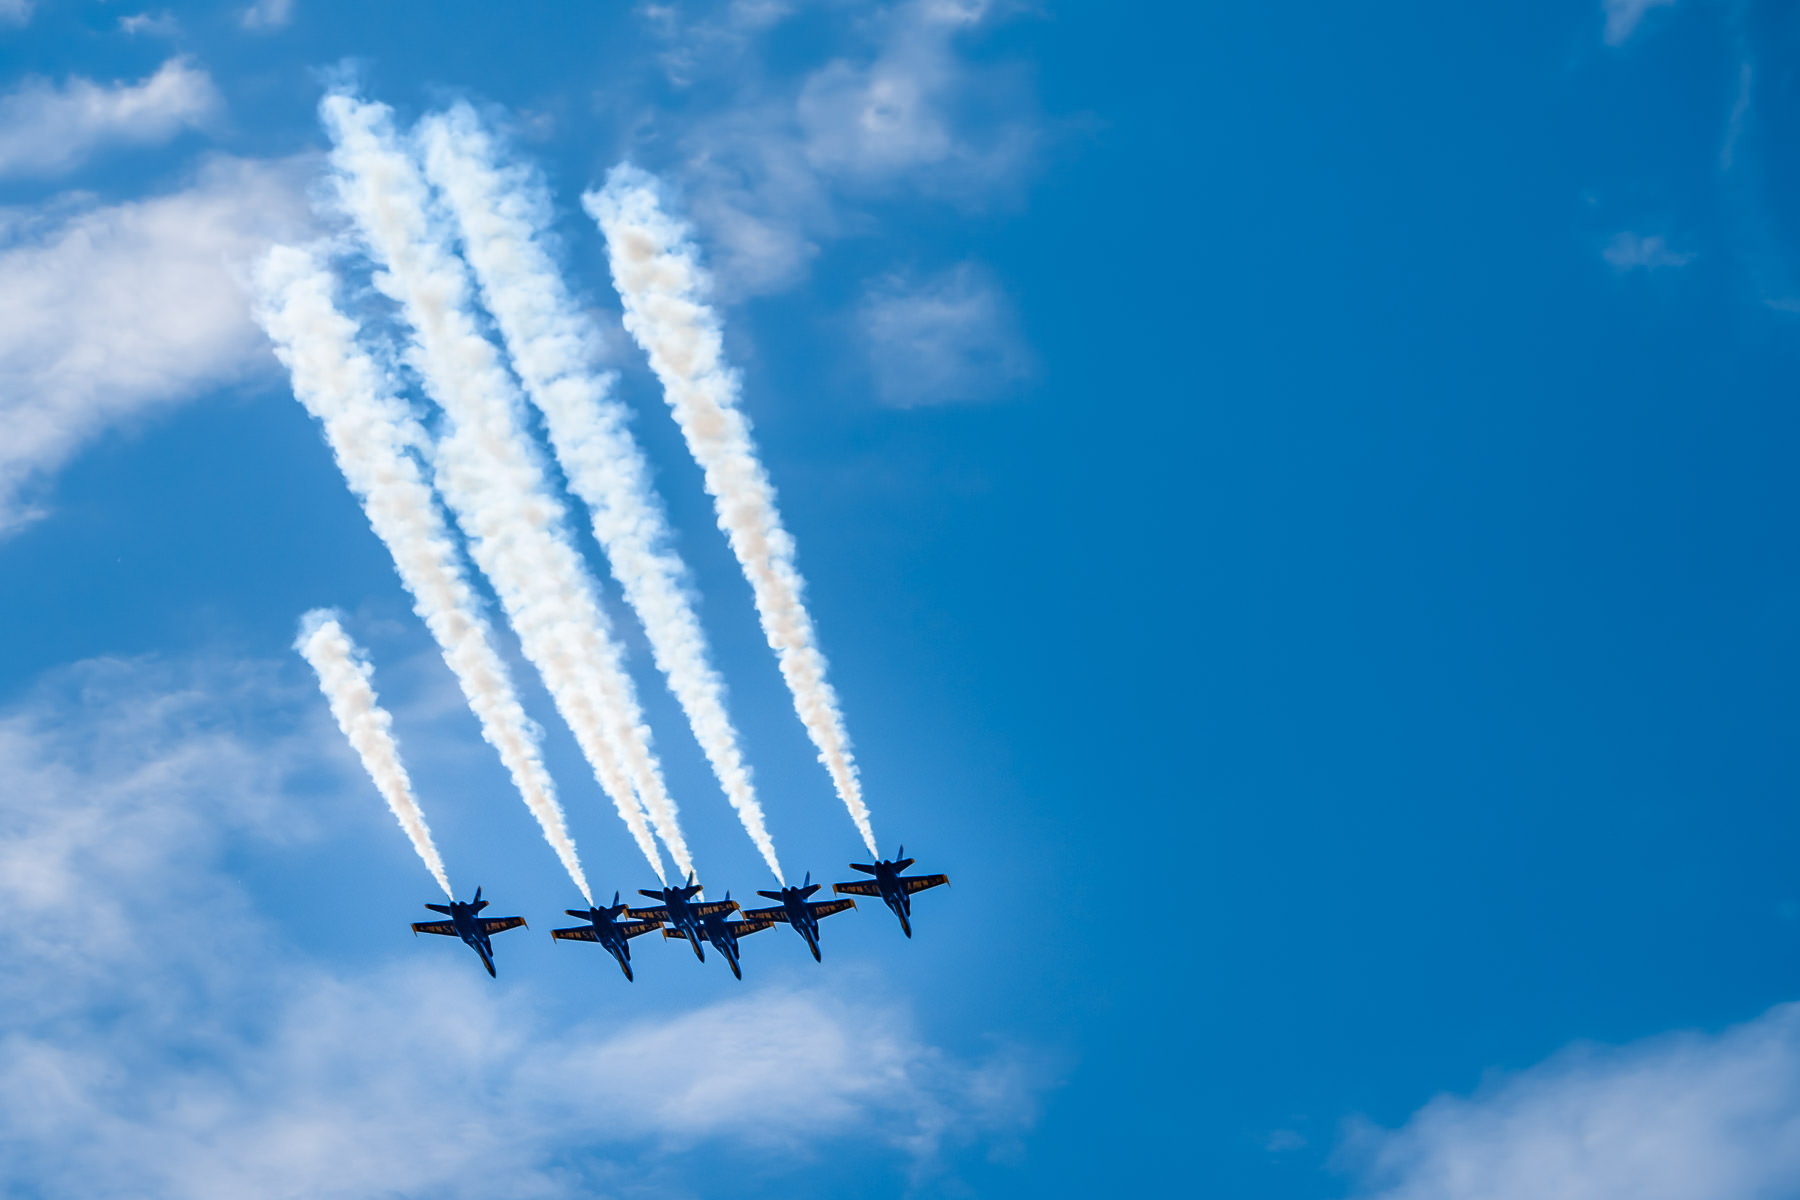 The U.S. Navy's Blue Angels fly over the northern suburbs of the Dallas-Fort Worth Metroplex as part of their salute to frontline workers in the COVID-19 pandemic response.